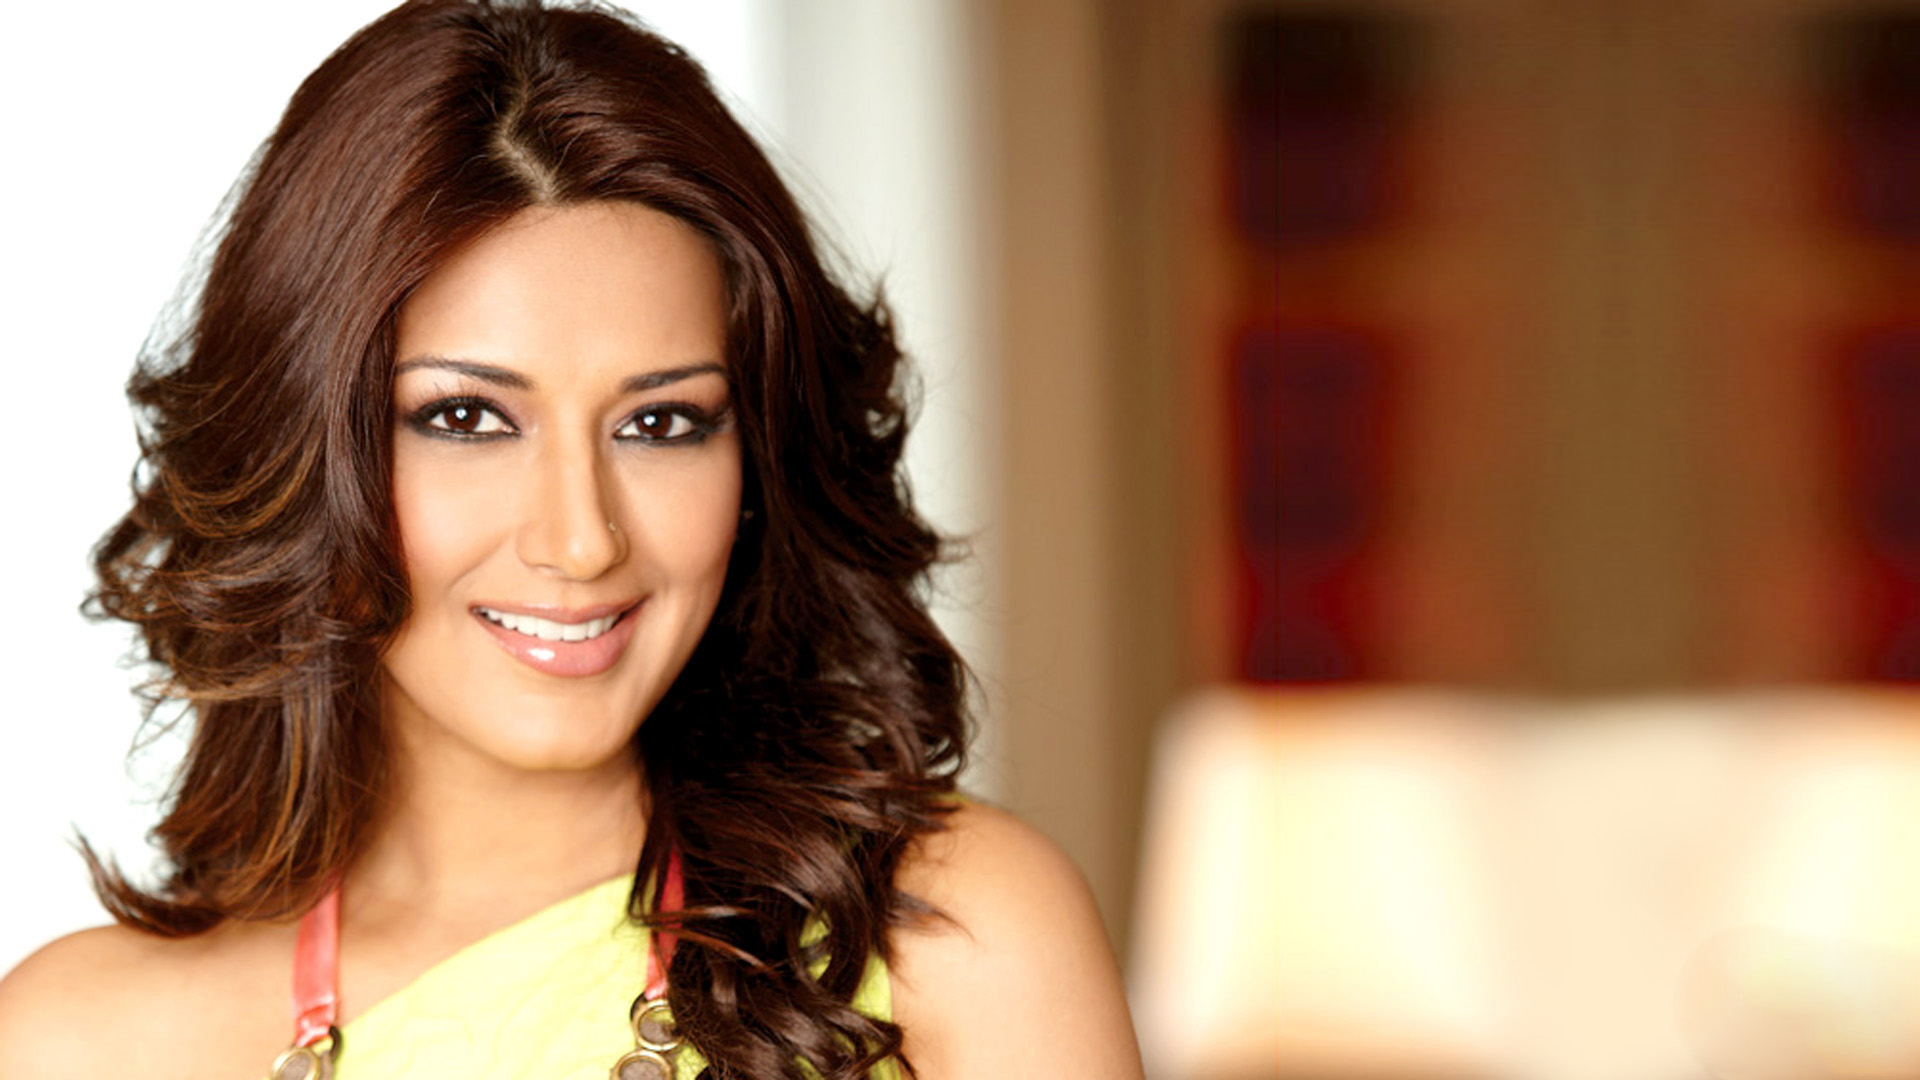 Sonali Bendre Latest Photoshoot, Full HD Wallpaper